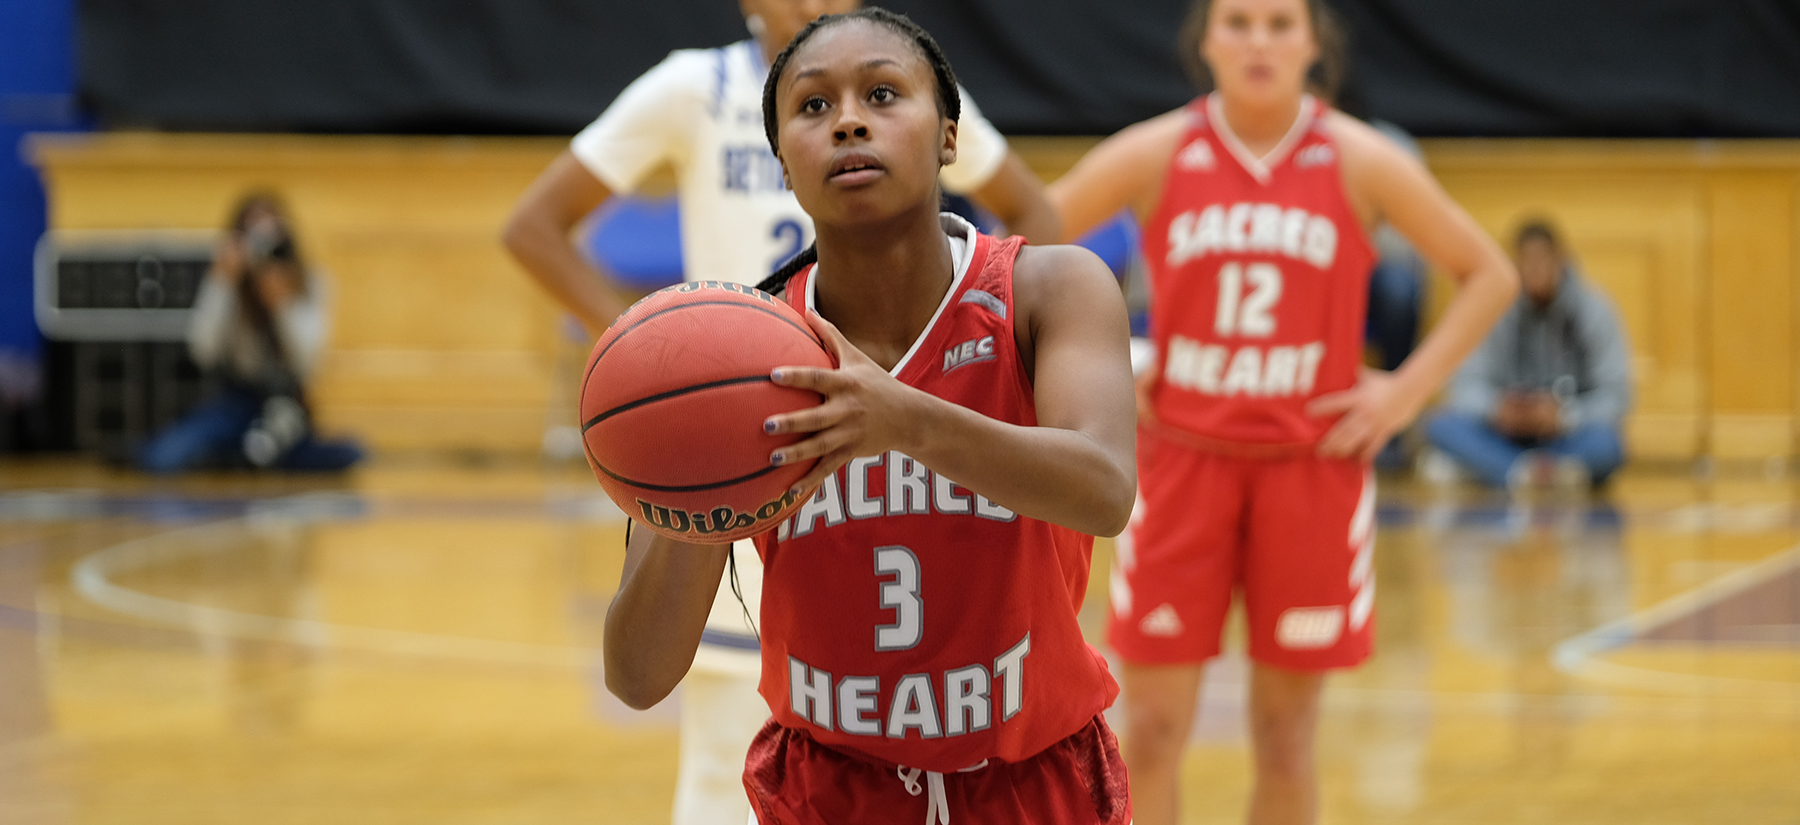 Nikki Johnson scored a career-high 25 points in her Pioneer debut. (Credit: SHU Athletics)